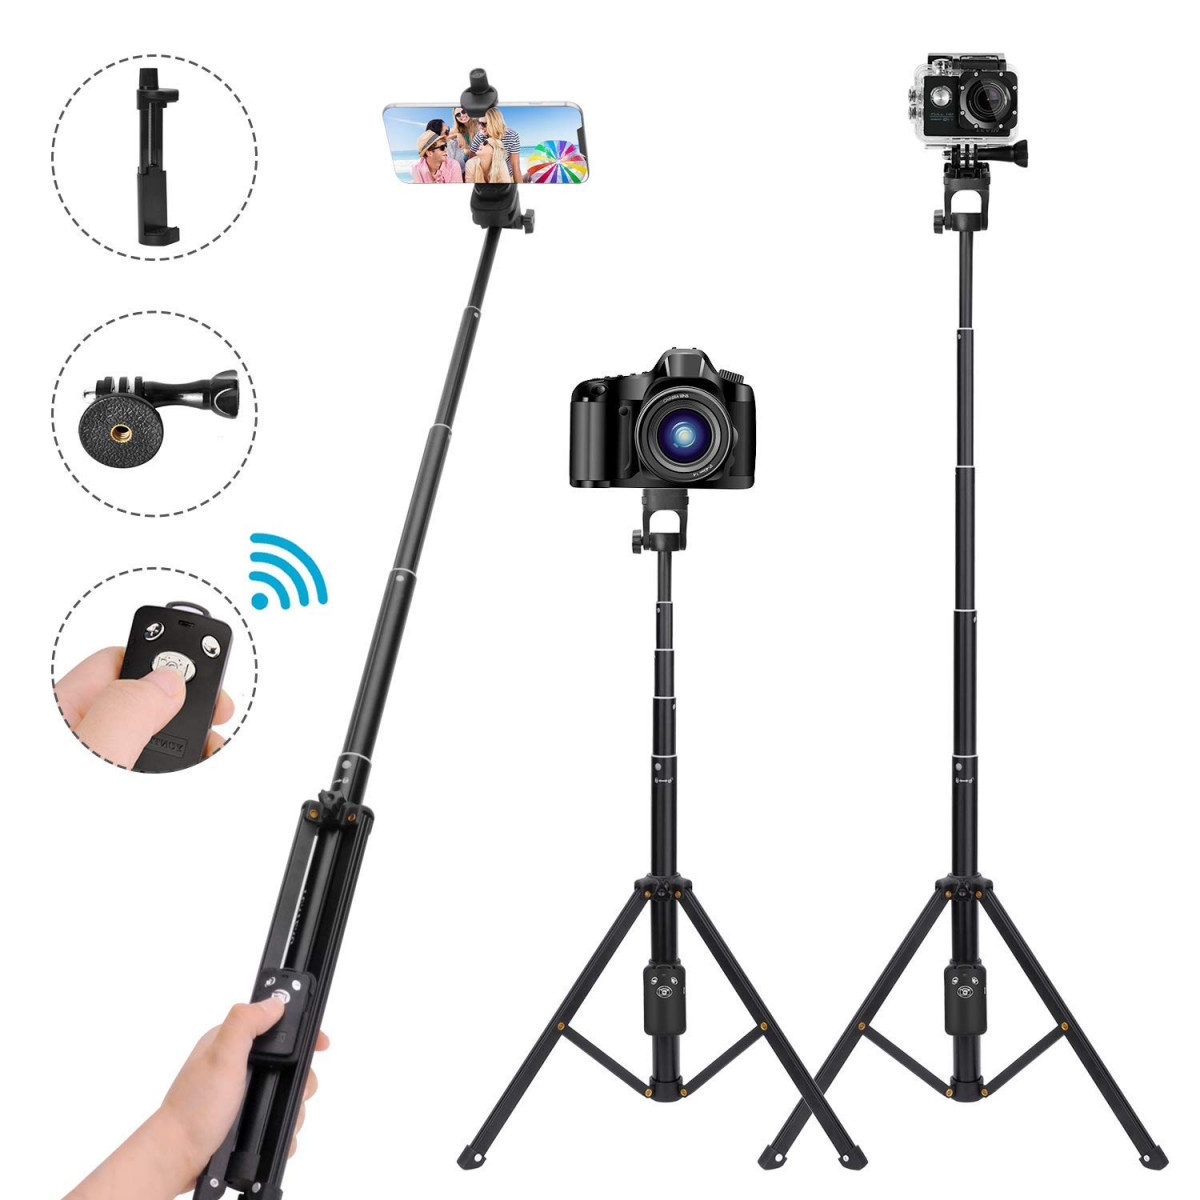 innovative design b39a4 43f7b Selfie Stick Tripod,54 Inch Extendable Camera Tripod for  Cellphone,Bluetooth Remote for Apple and Android Devices,Suitable for  iPhone 6 7 8 X ...